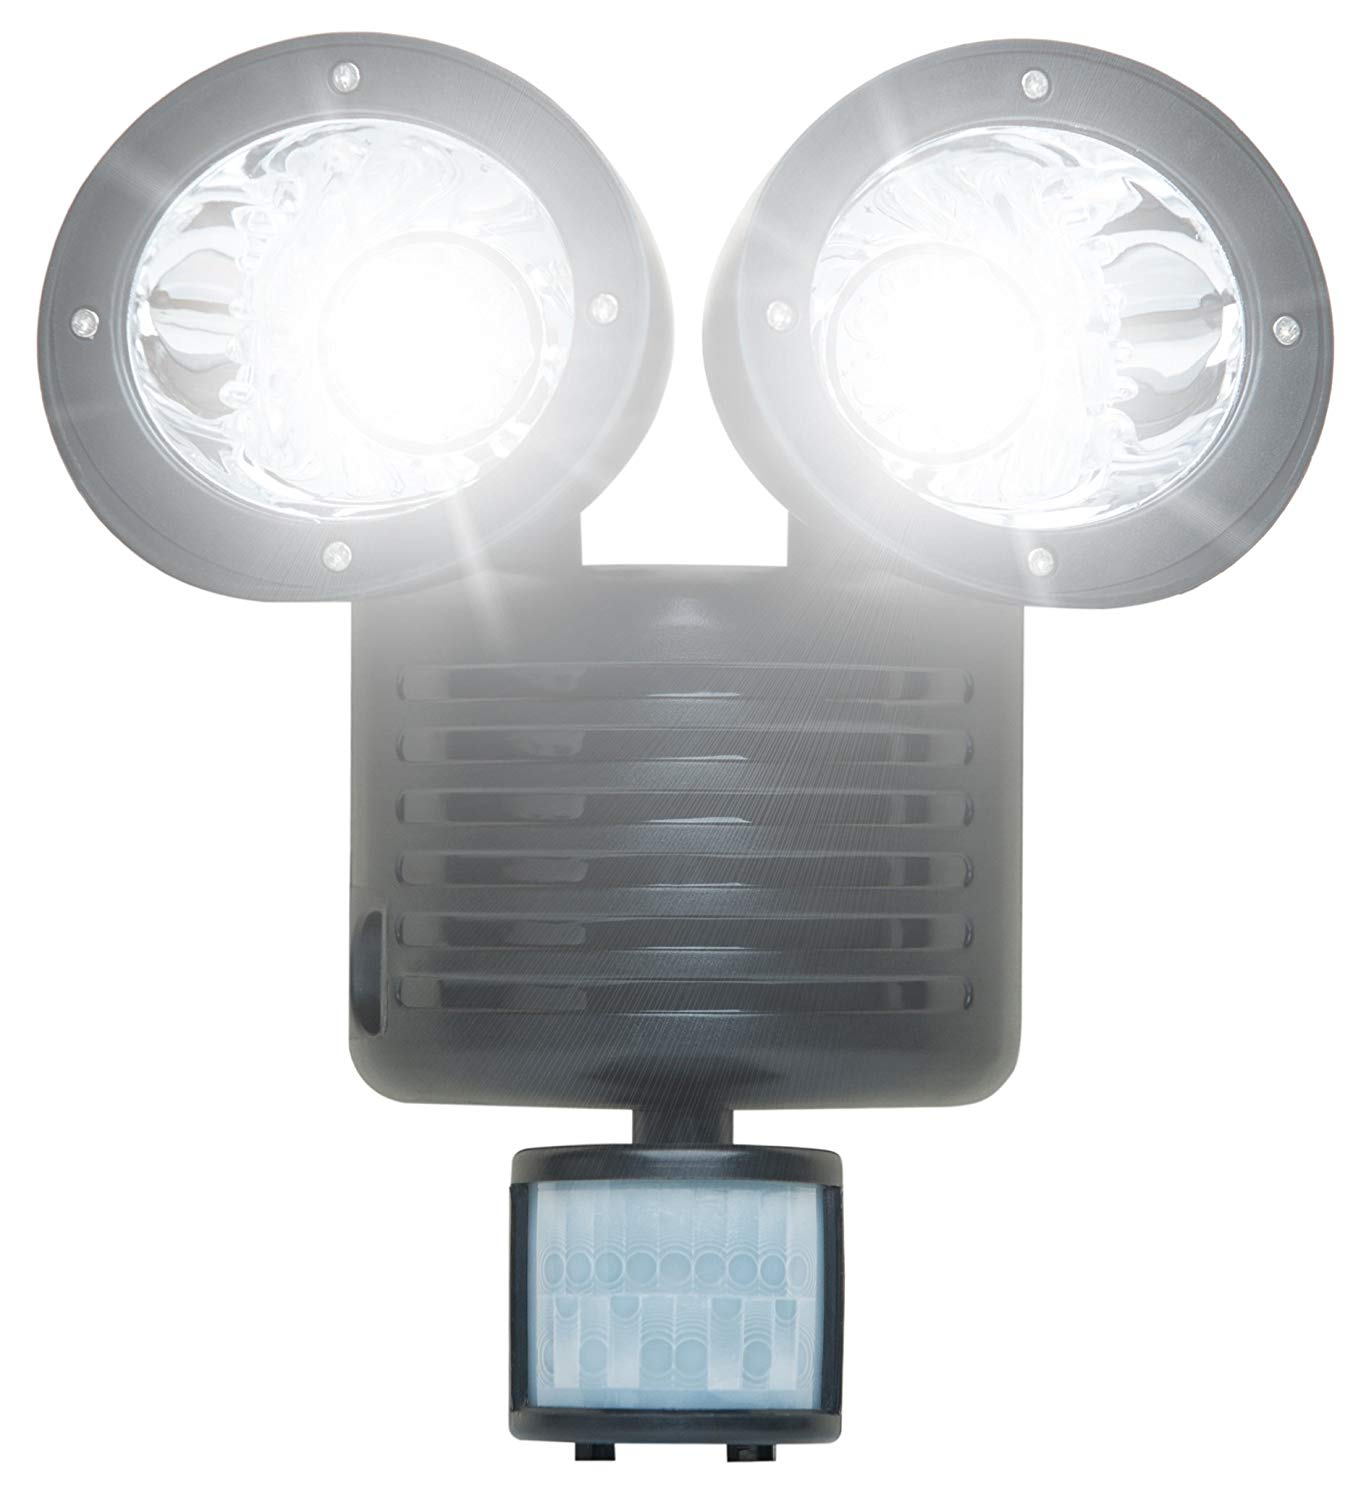 22 LED Security Light